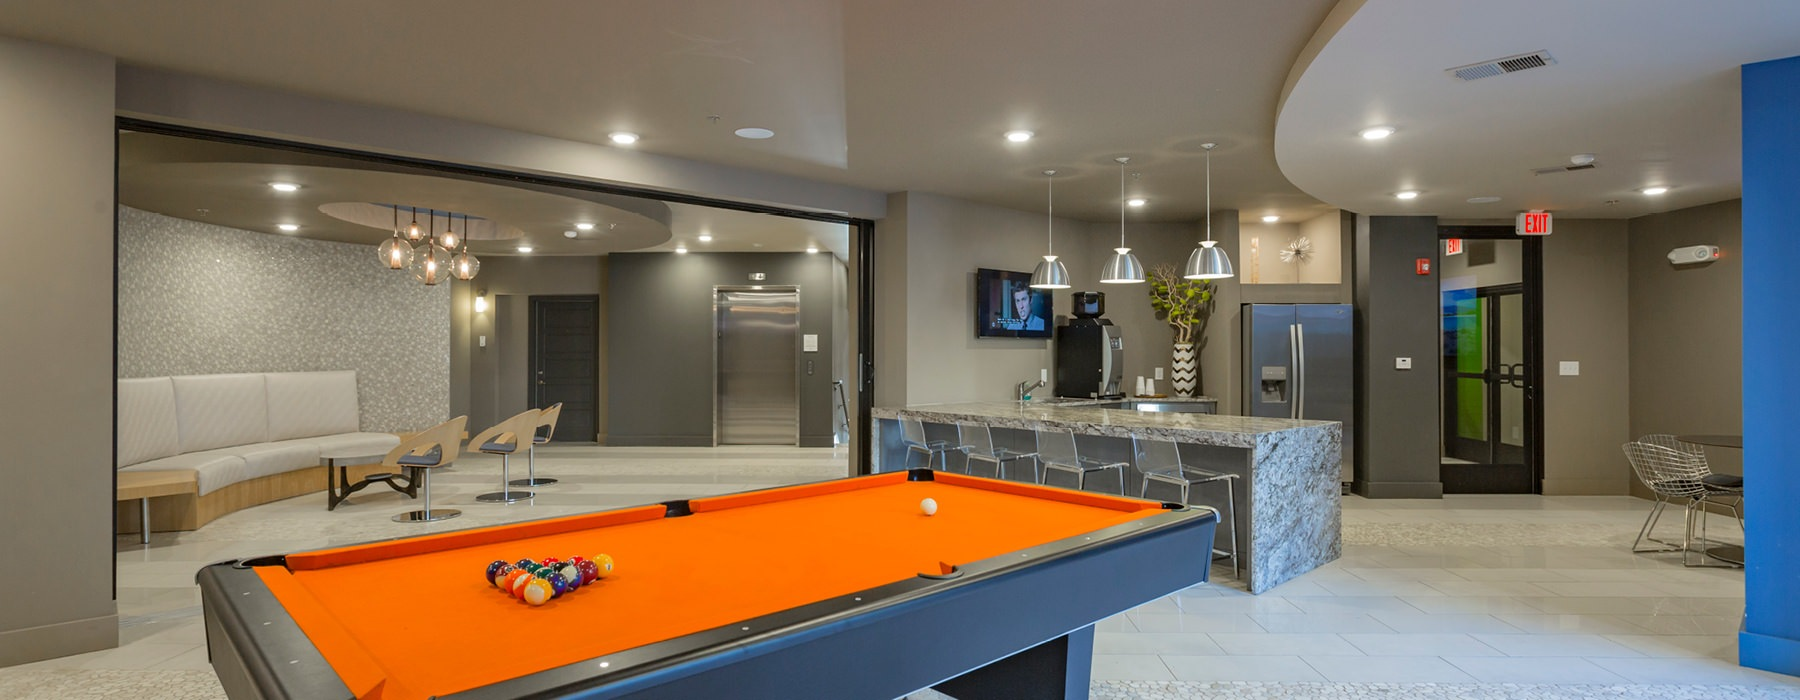 Clubhouse with pool table and demo kitchen